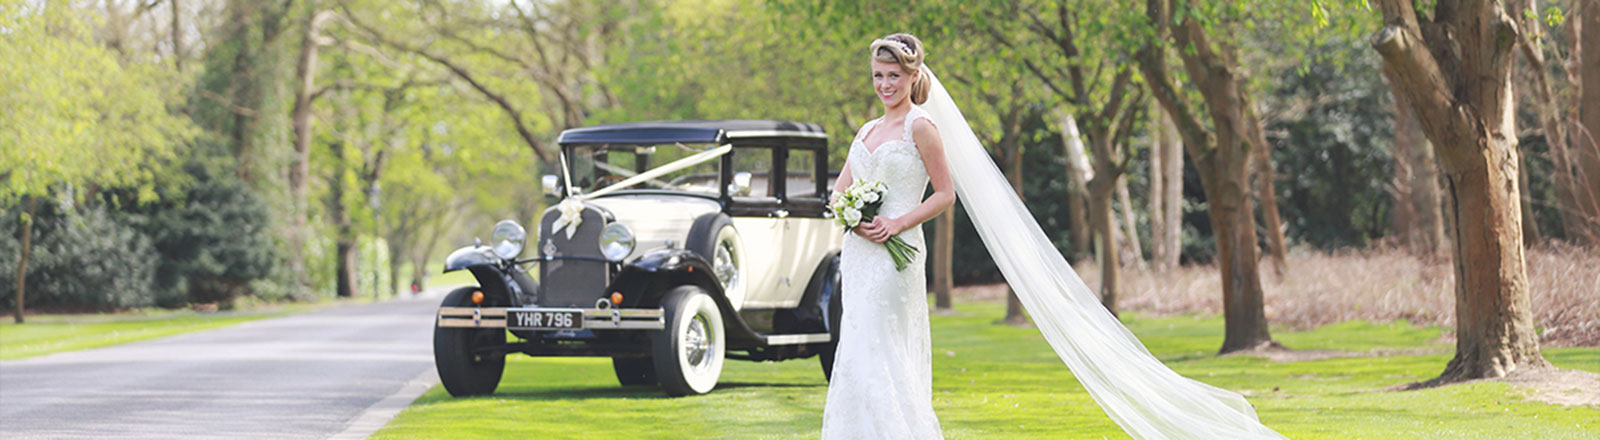 Bride posing in front of vintage car